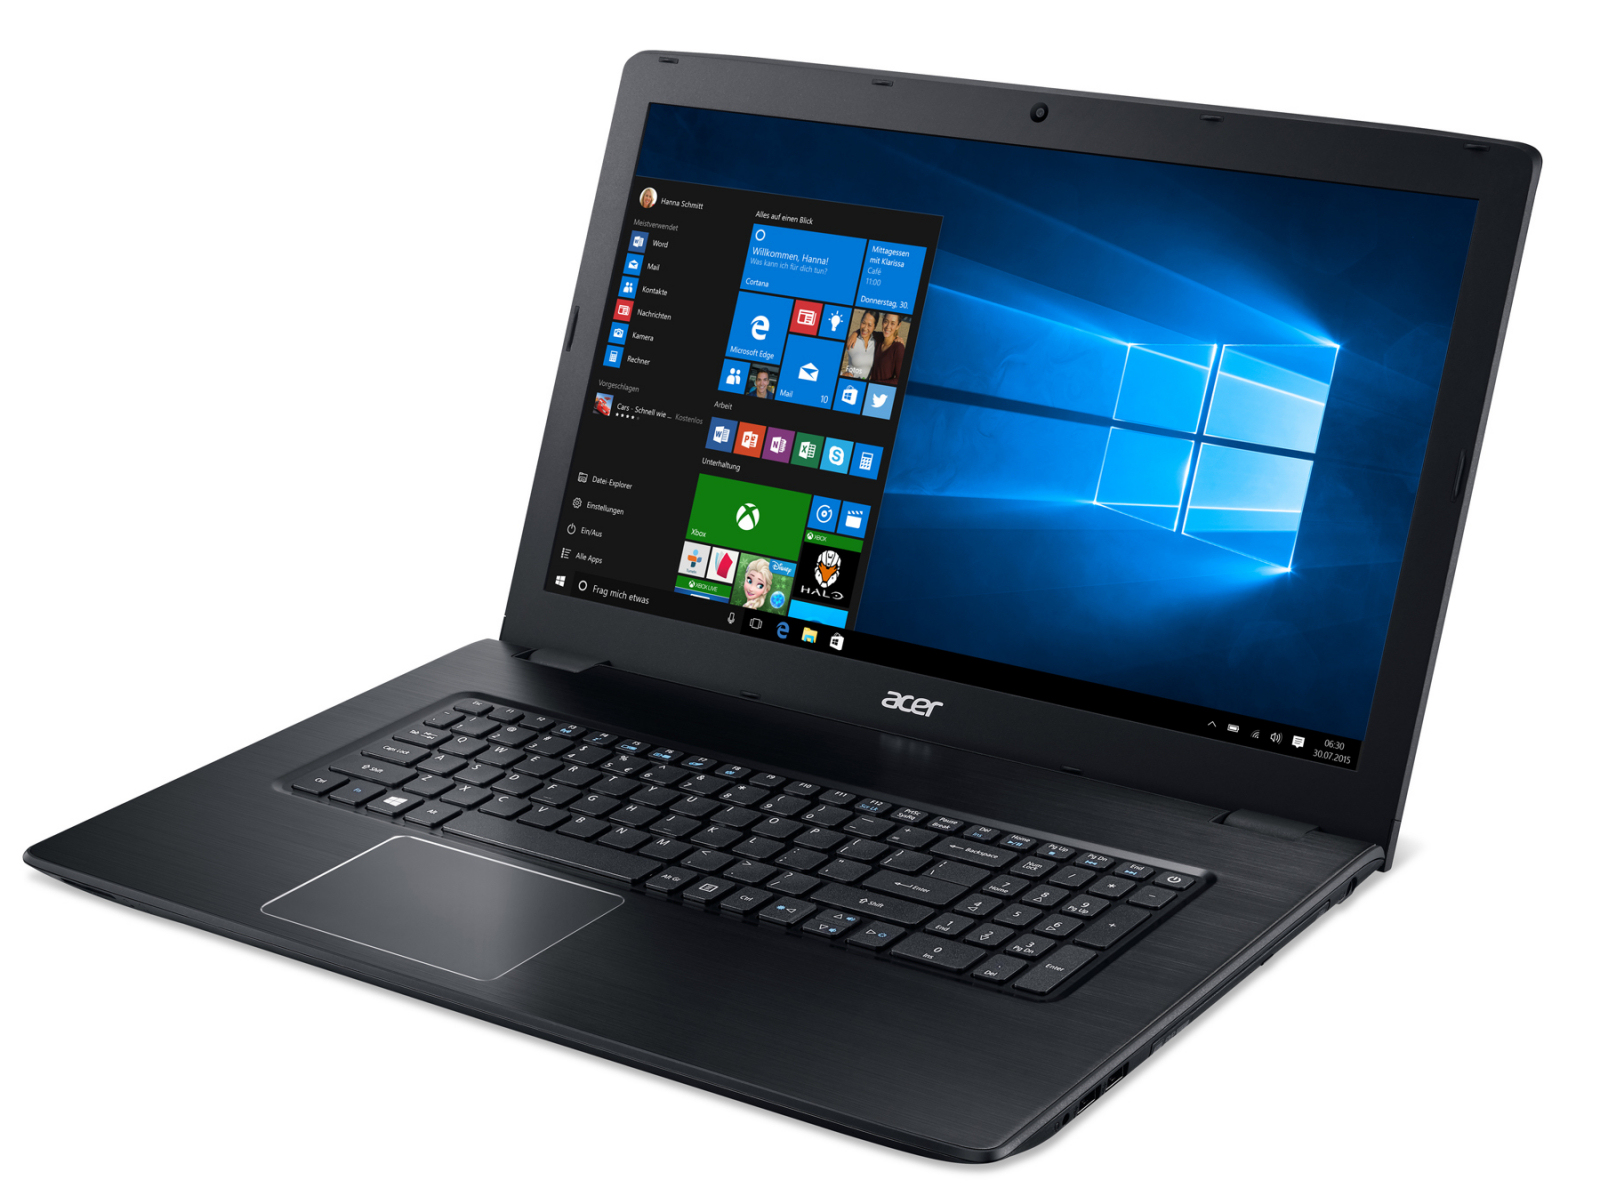 Acer Aspire E5-475G Atheros WLAN Driver for Windows 7